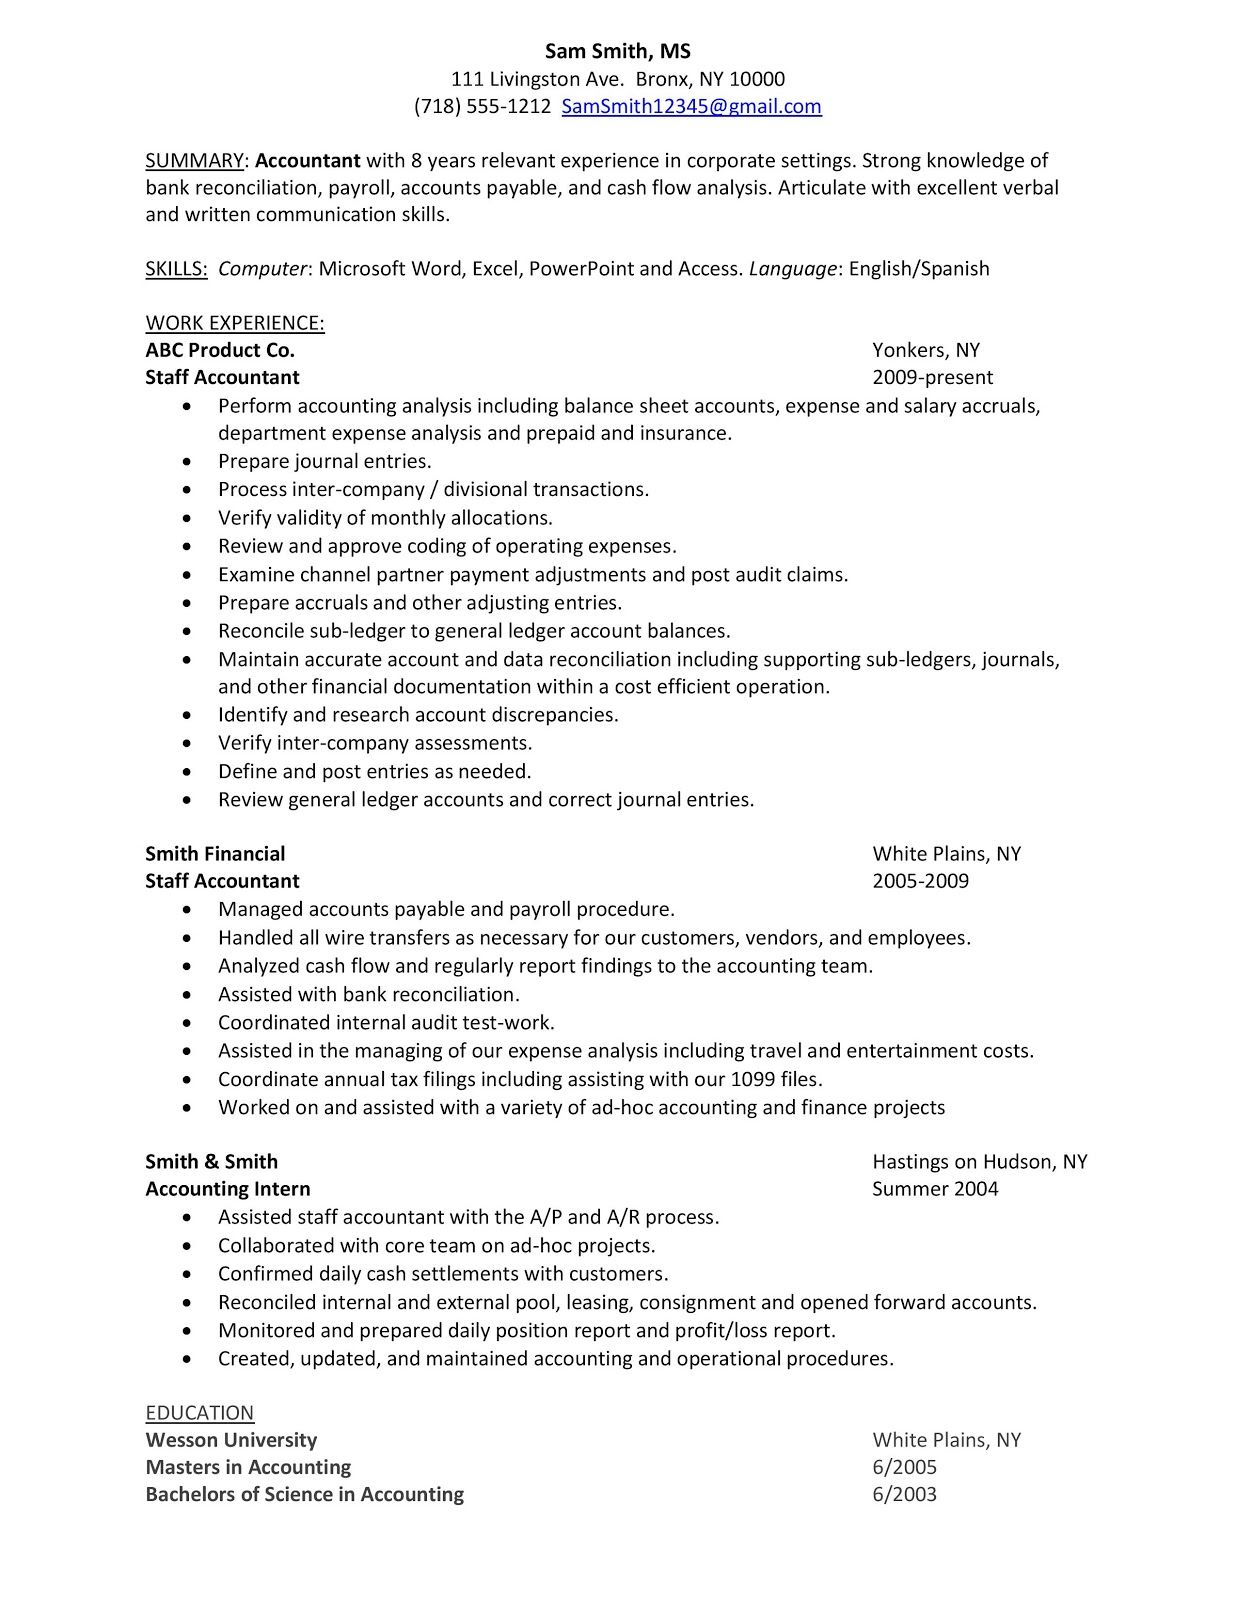 Microsoft Test Engineer Sample Resume The Power For Career Success And Know Someone What Now Staff